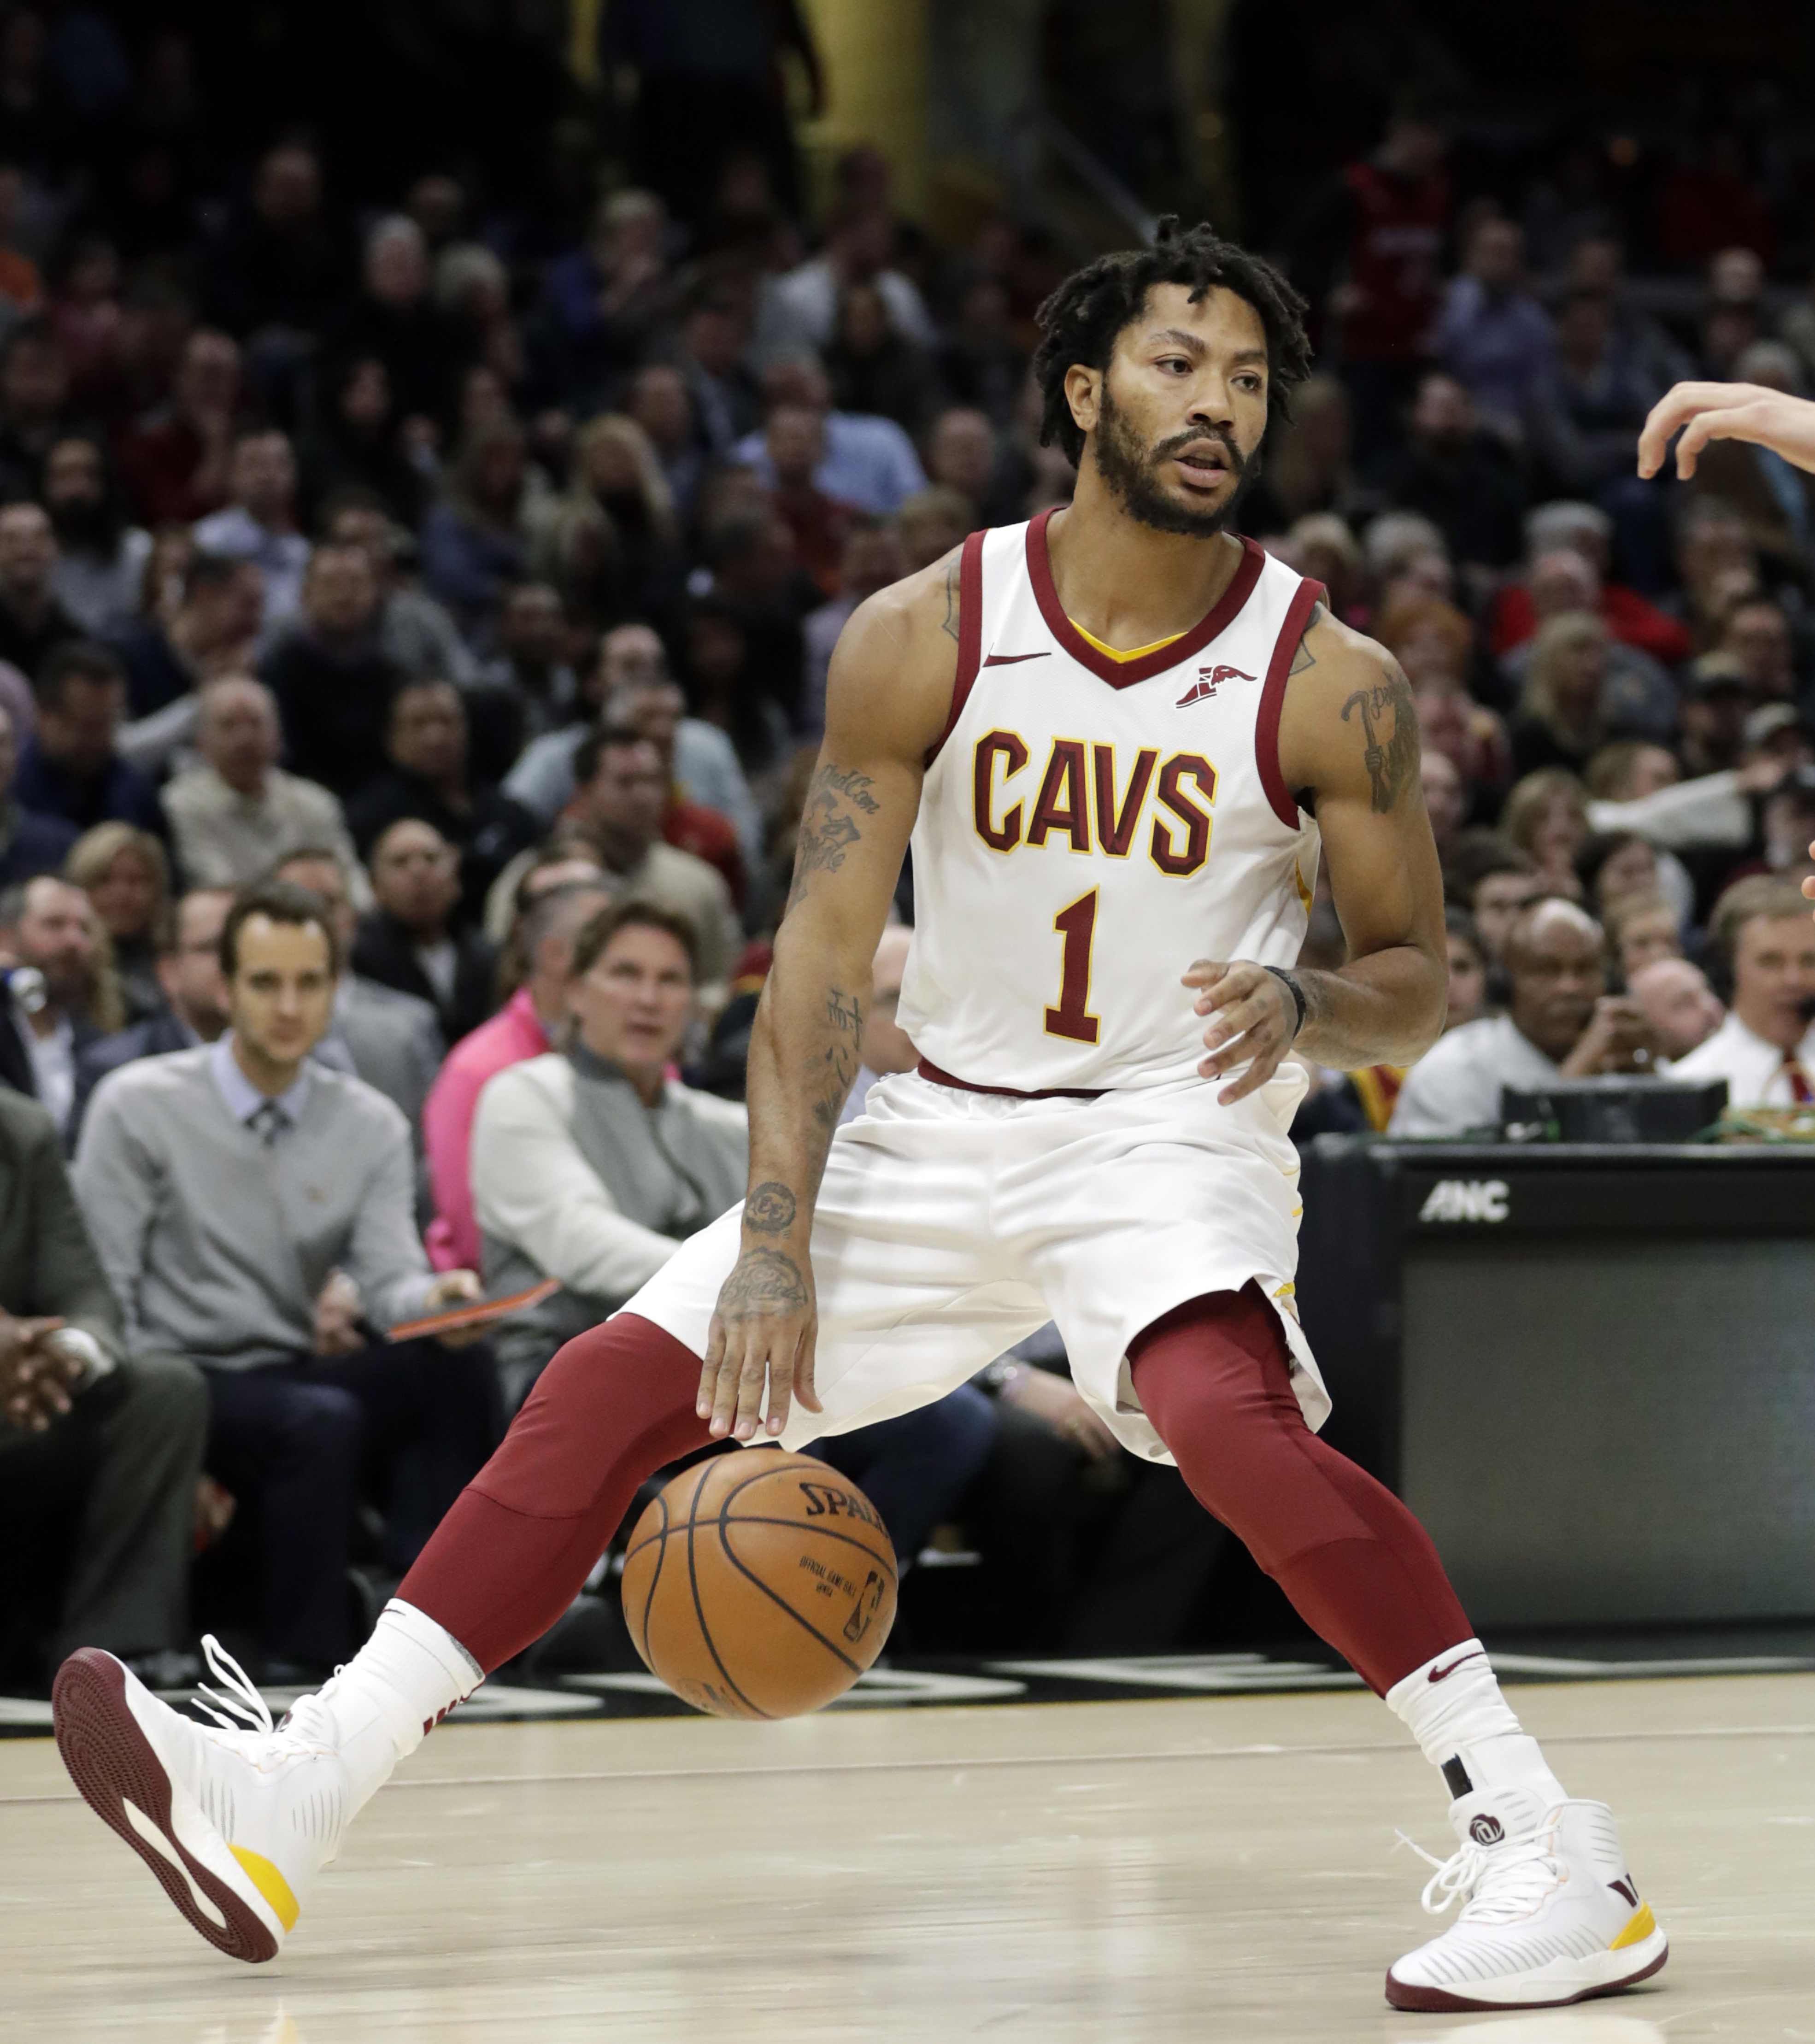 cf92df026ed Basketball  Utah Jazz waive Derrick Rose after Cleveland Cavaliers trade